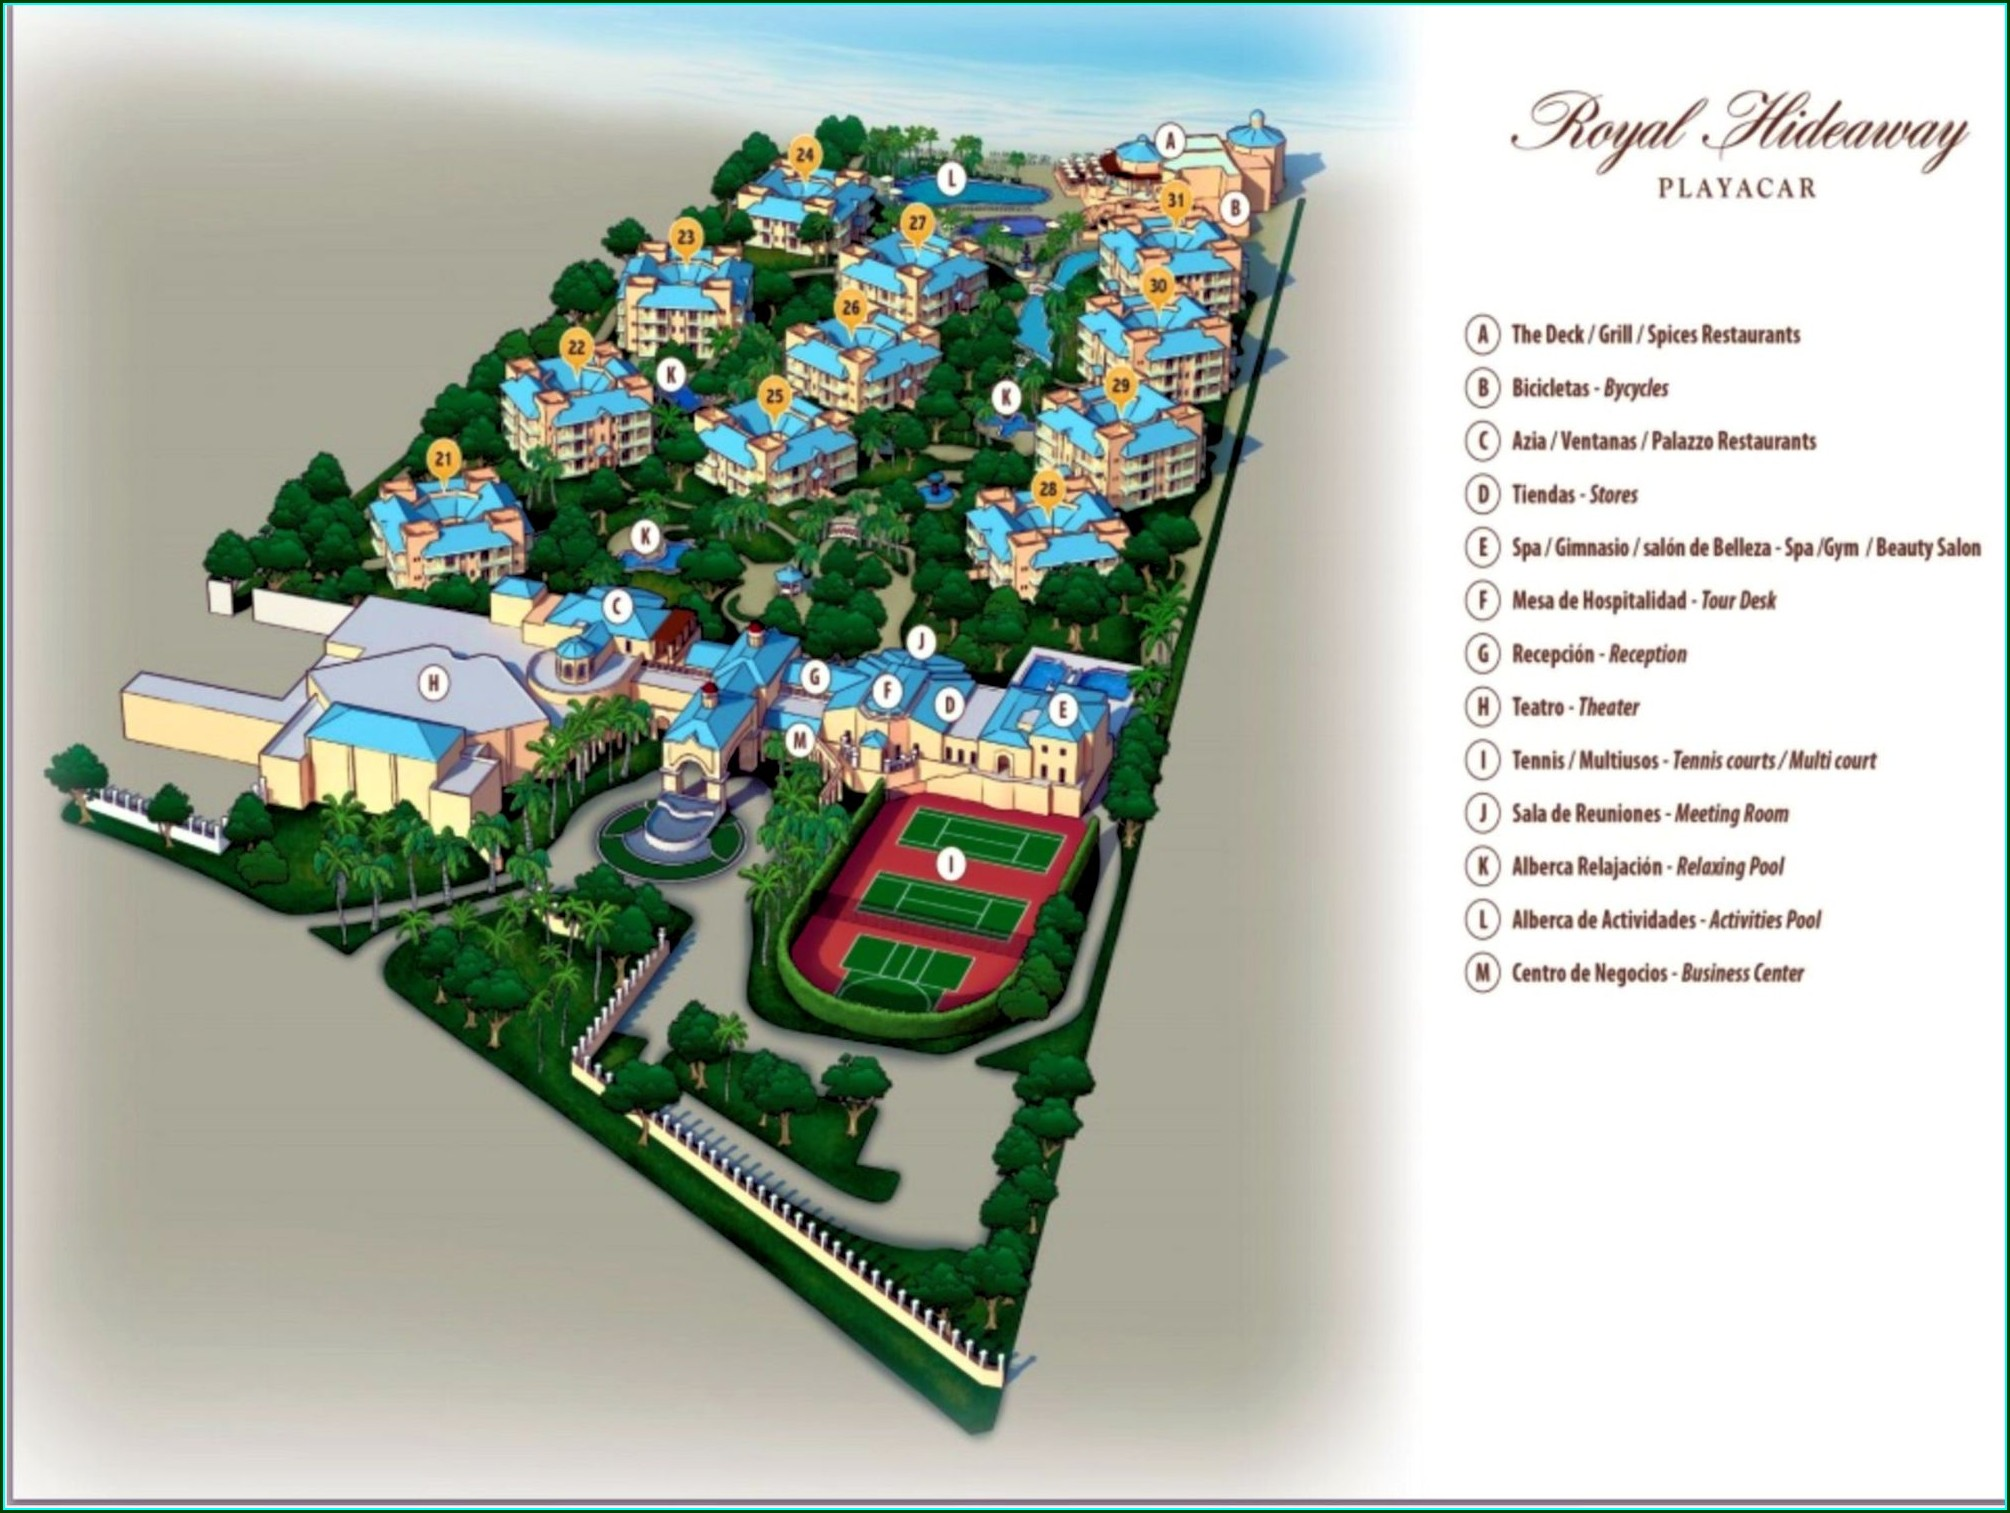 Royal Hideaway Playacar Resort Map